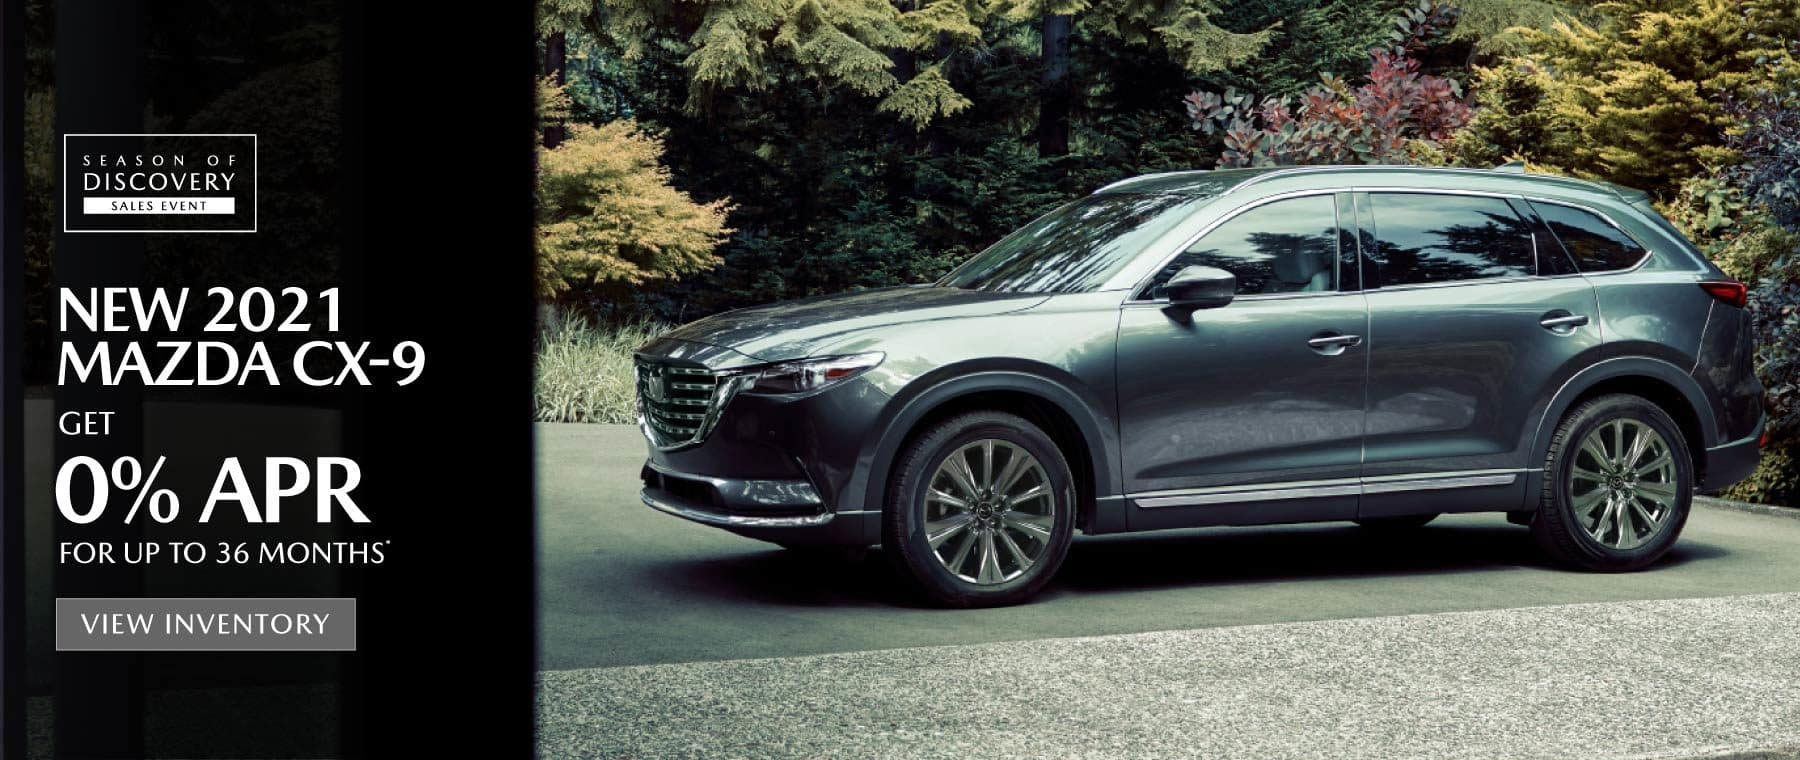 2021 Mazda CX-9   0% APR for 36 months   View Inventory